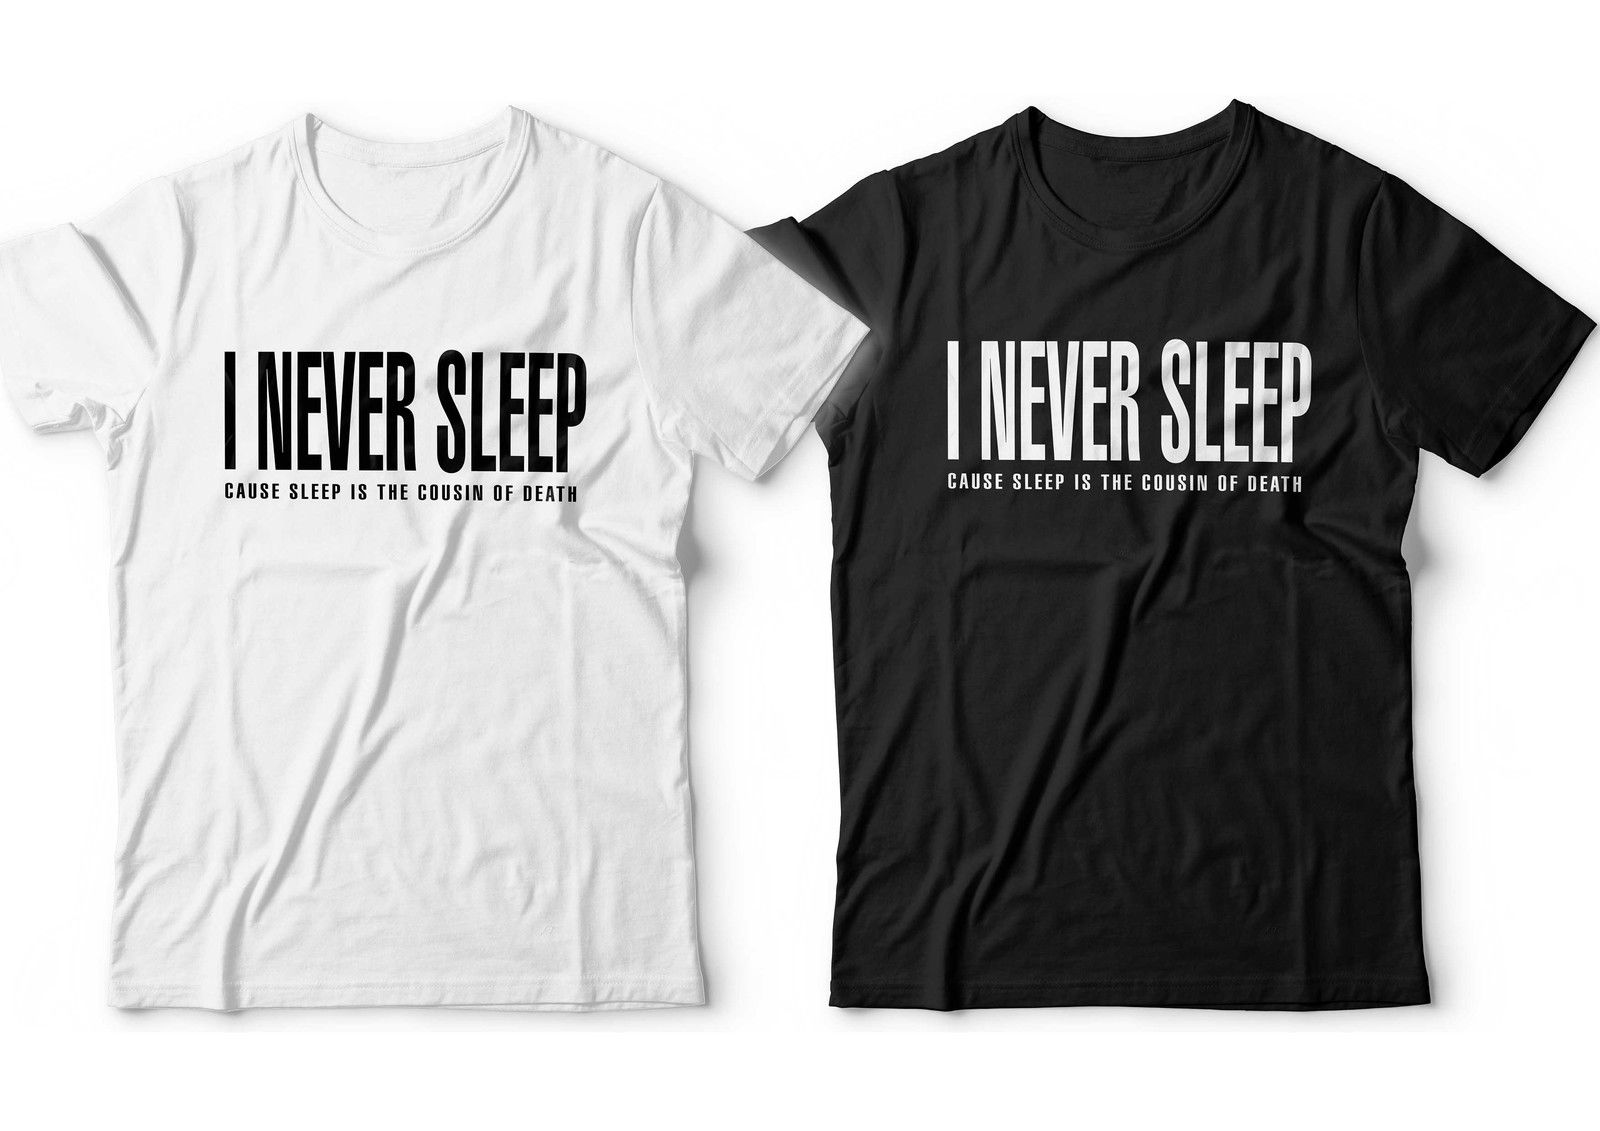 US $11 88 15% OFF|Nas I Never Sleep T shirt NY Illmatic Mens Escobar  Nastradamus Hip Hop T Shirt Cotton Men Short Sleeve Tee Shirts Black  Style-in